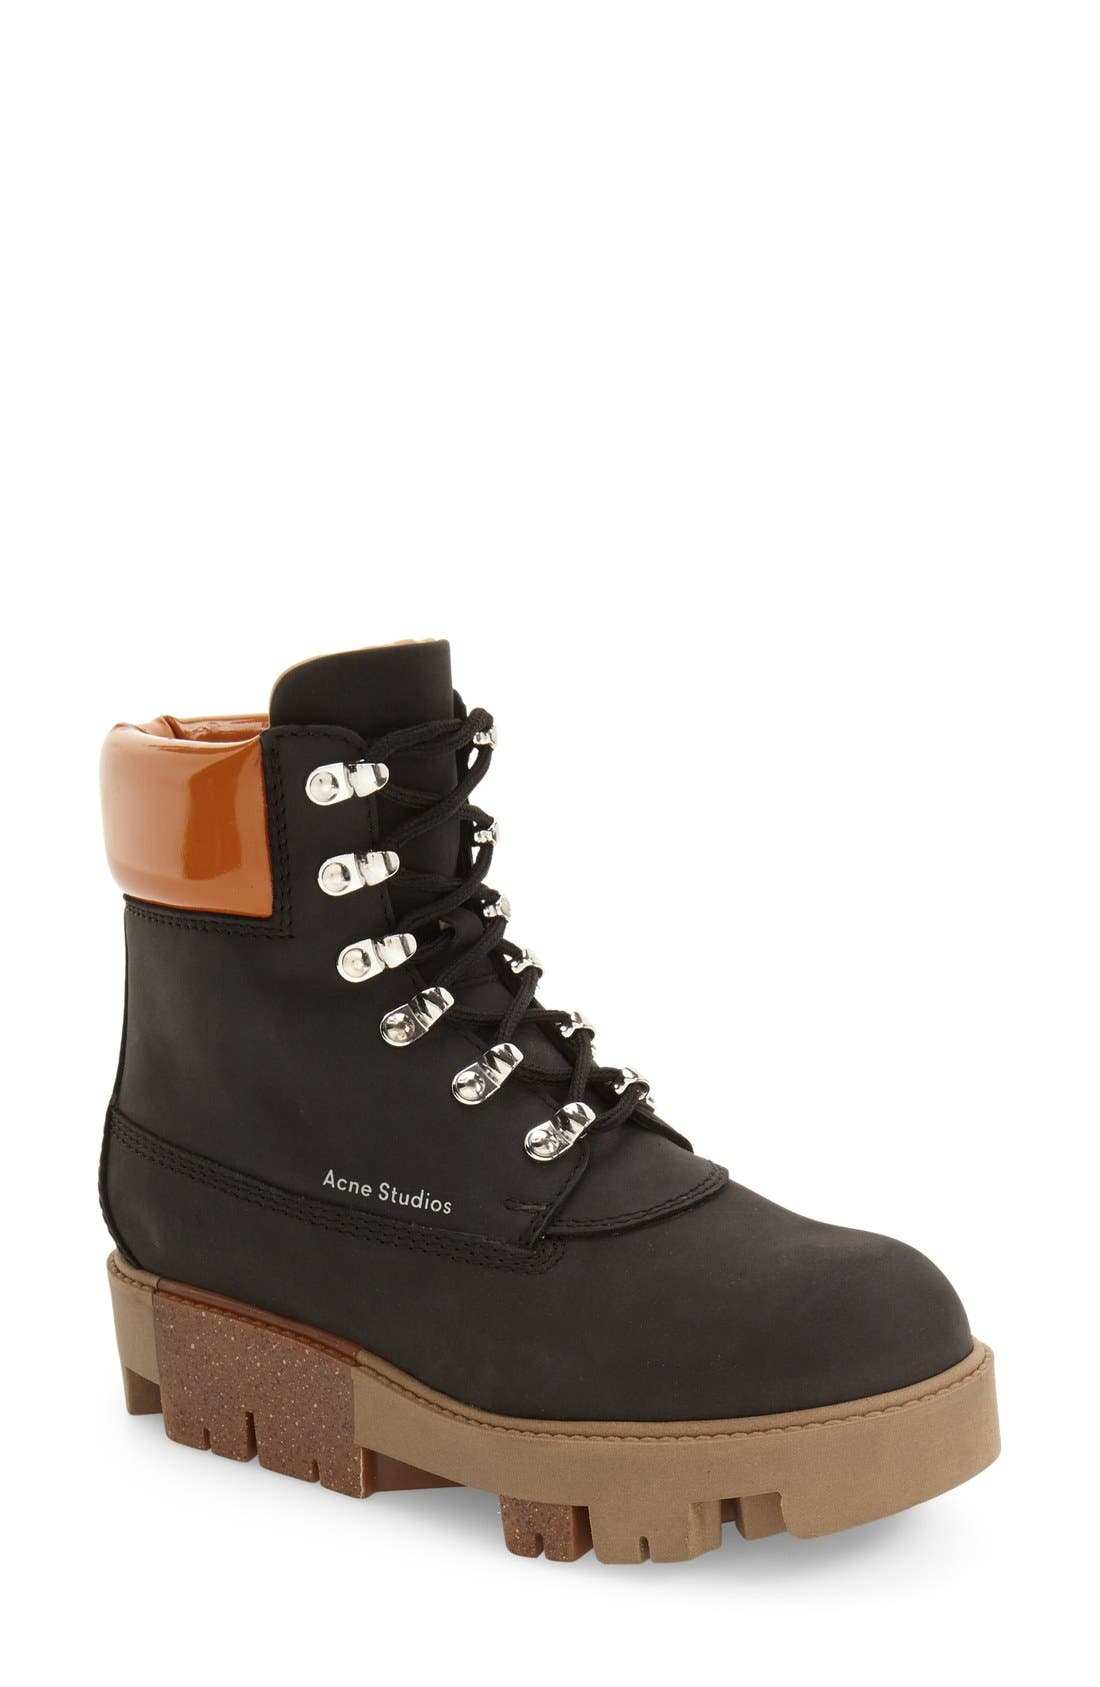 Alternate Image 1 Selected - ACNE Studios Telda Hiker Boot (Women)